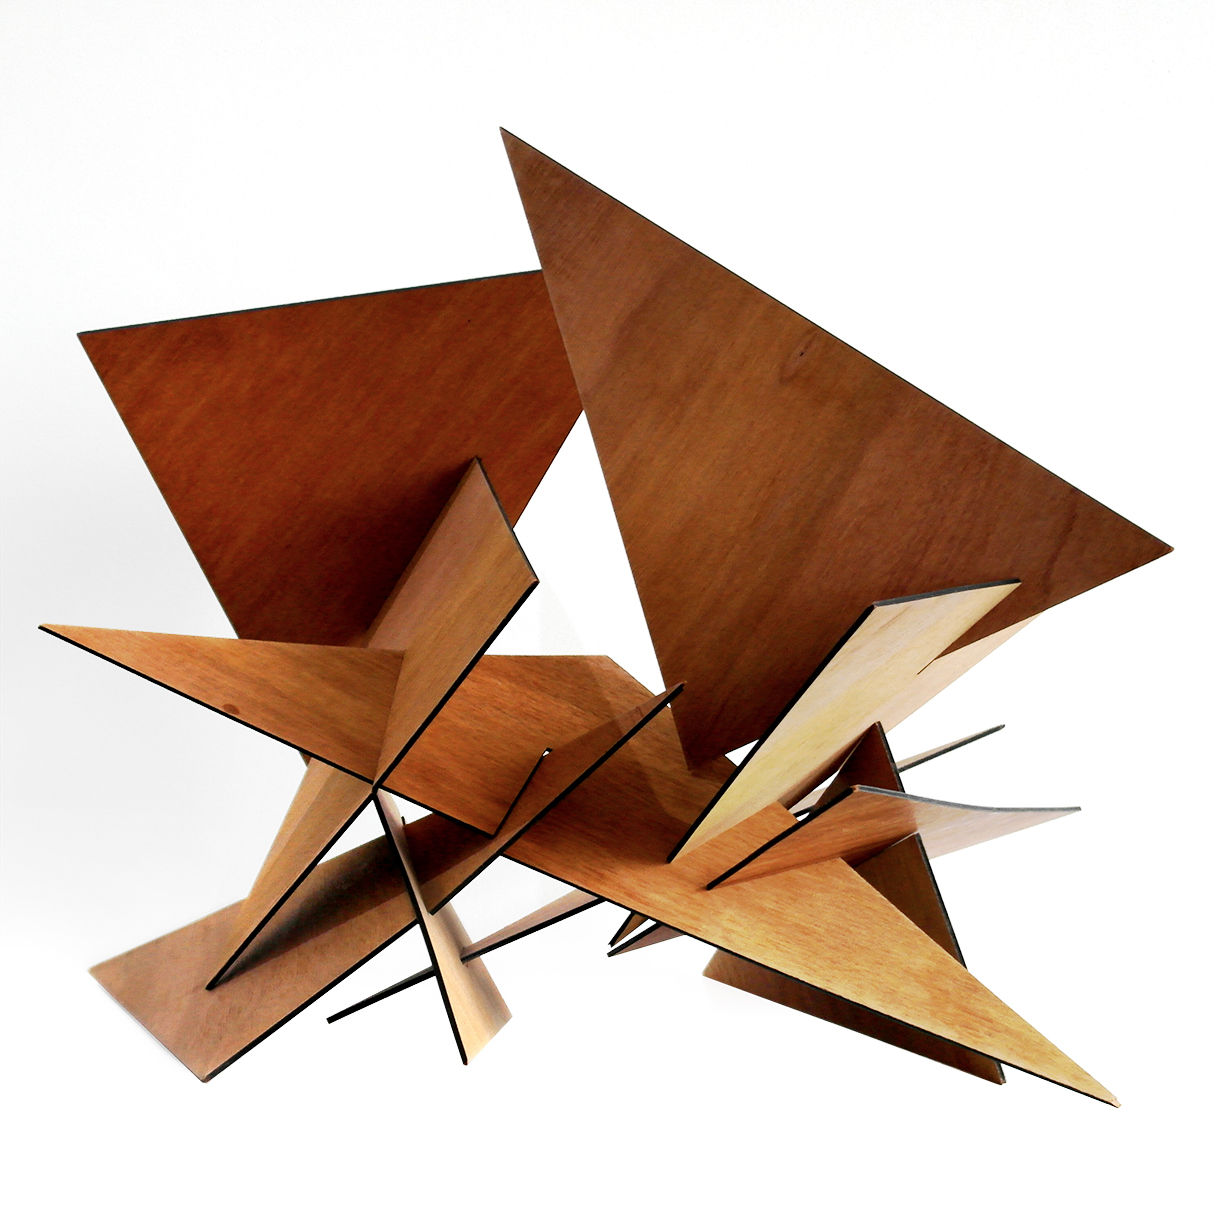 Wood Triangles